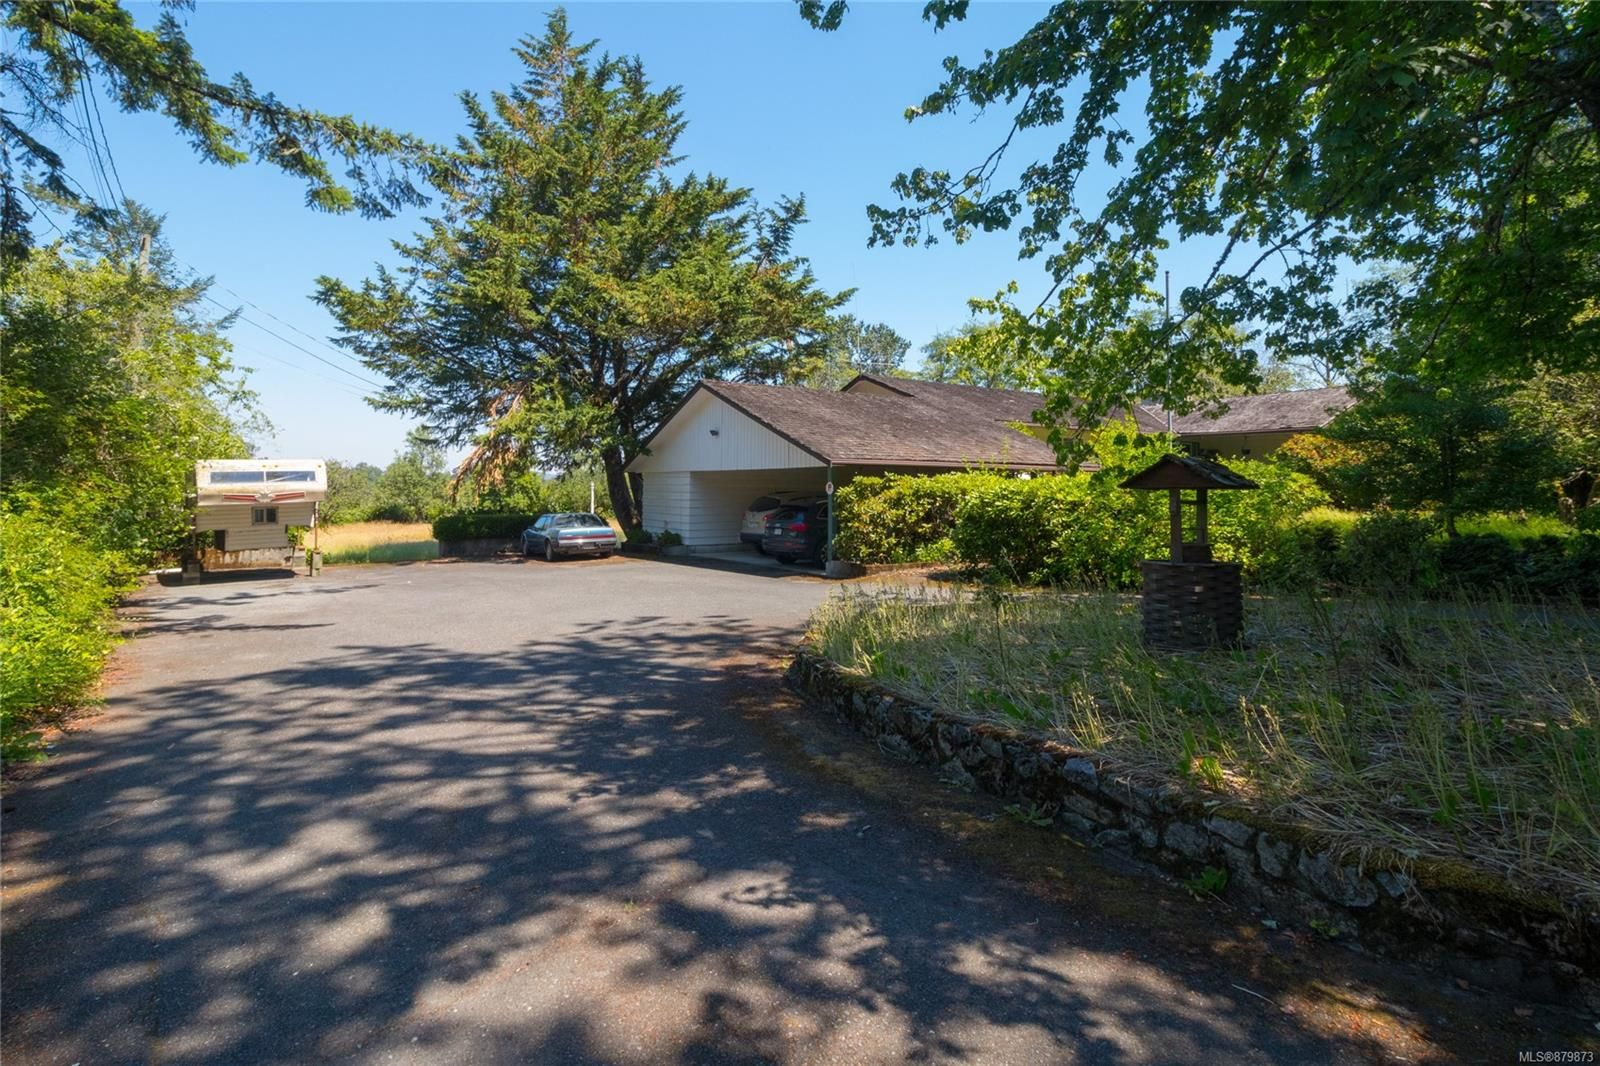 Main Photo: 1070 McTavish Rd in : NS Ardmore House for sale (North Saanich)  : MLS®# 879873